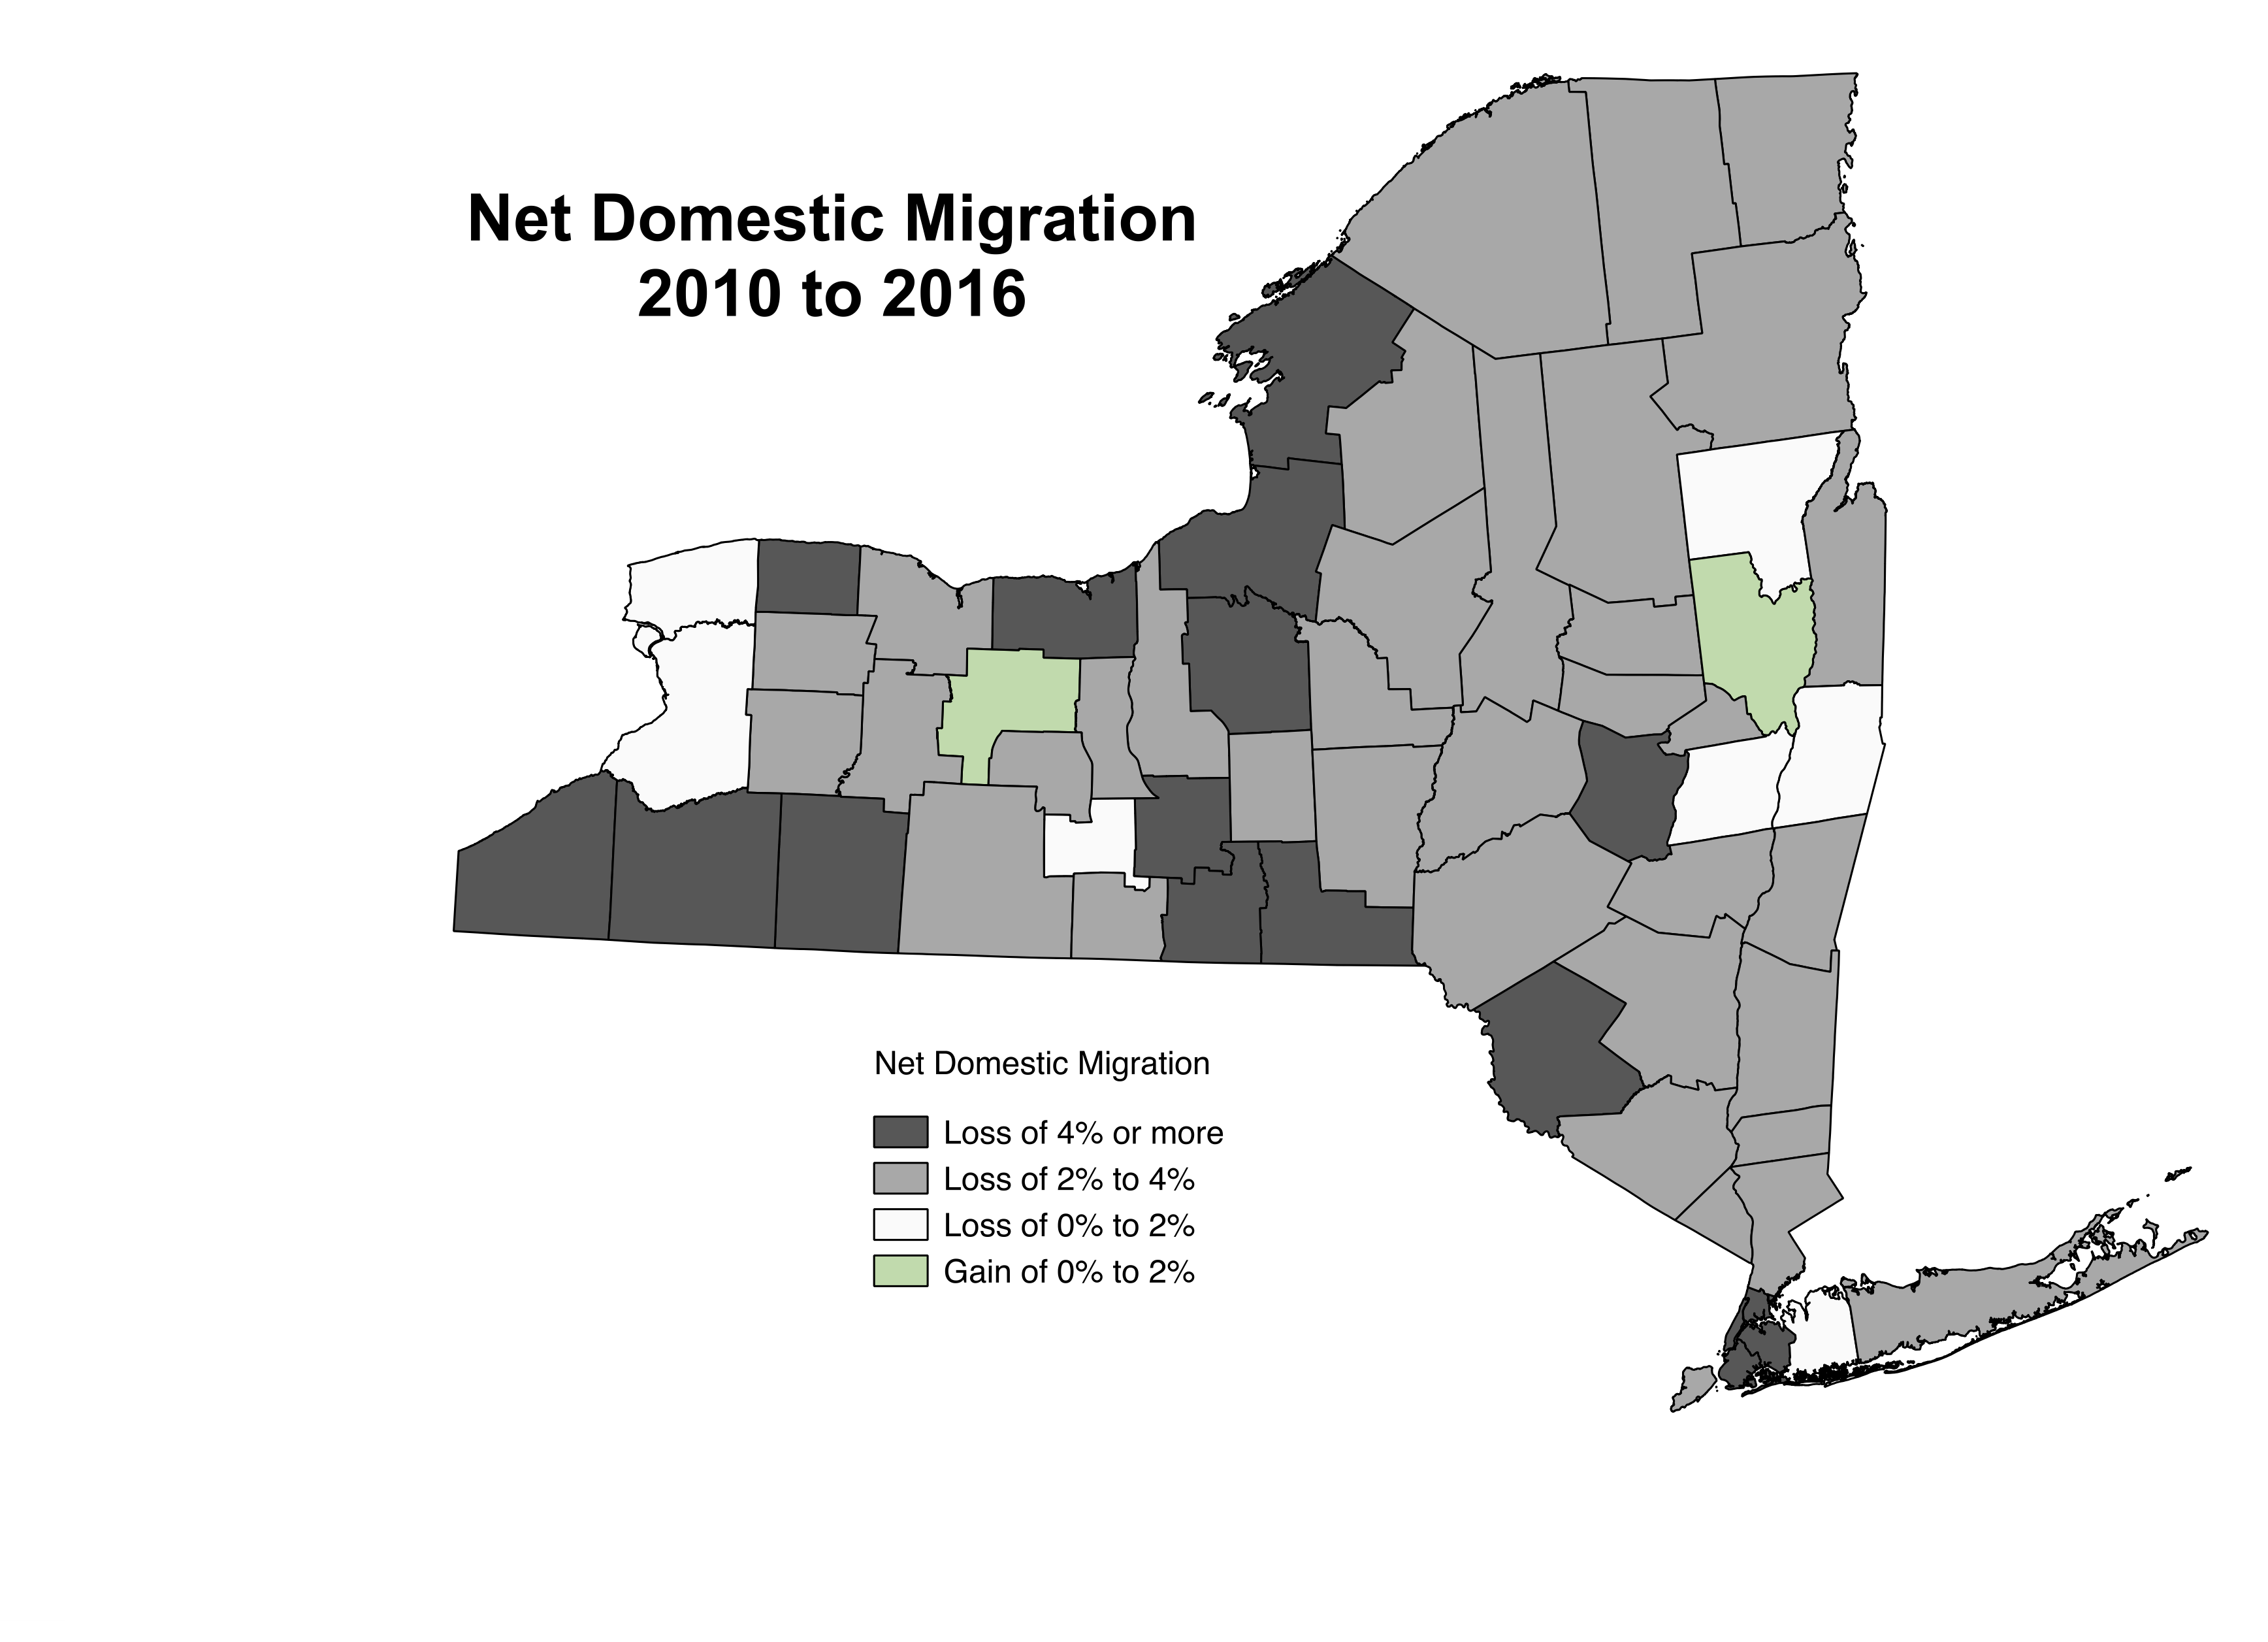 ontario and saratoga have been the only counties to experience positive domestic migration meaning they attracted more new residents from the rest of the